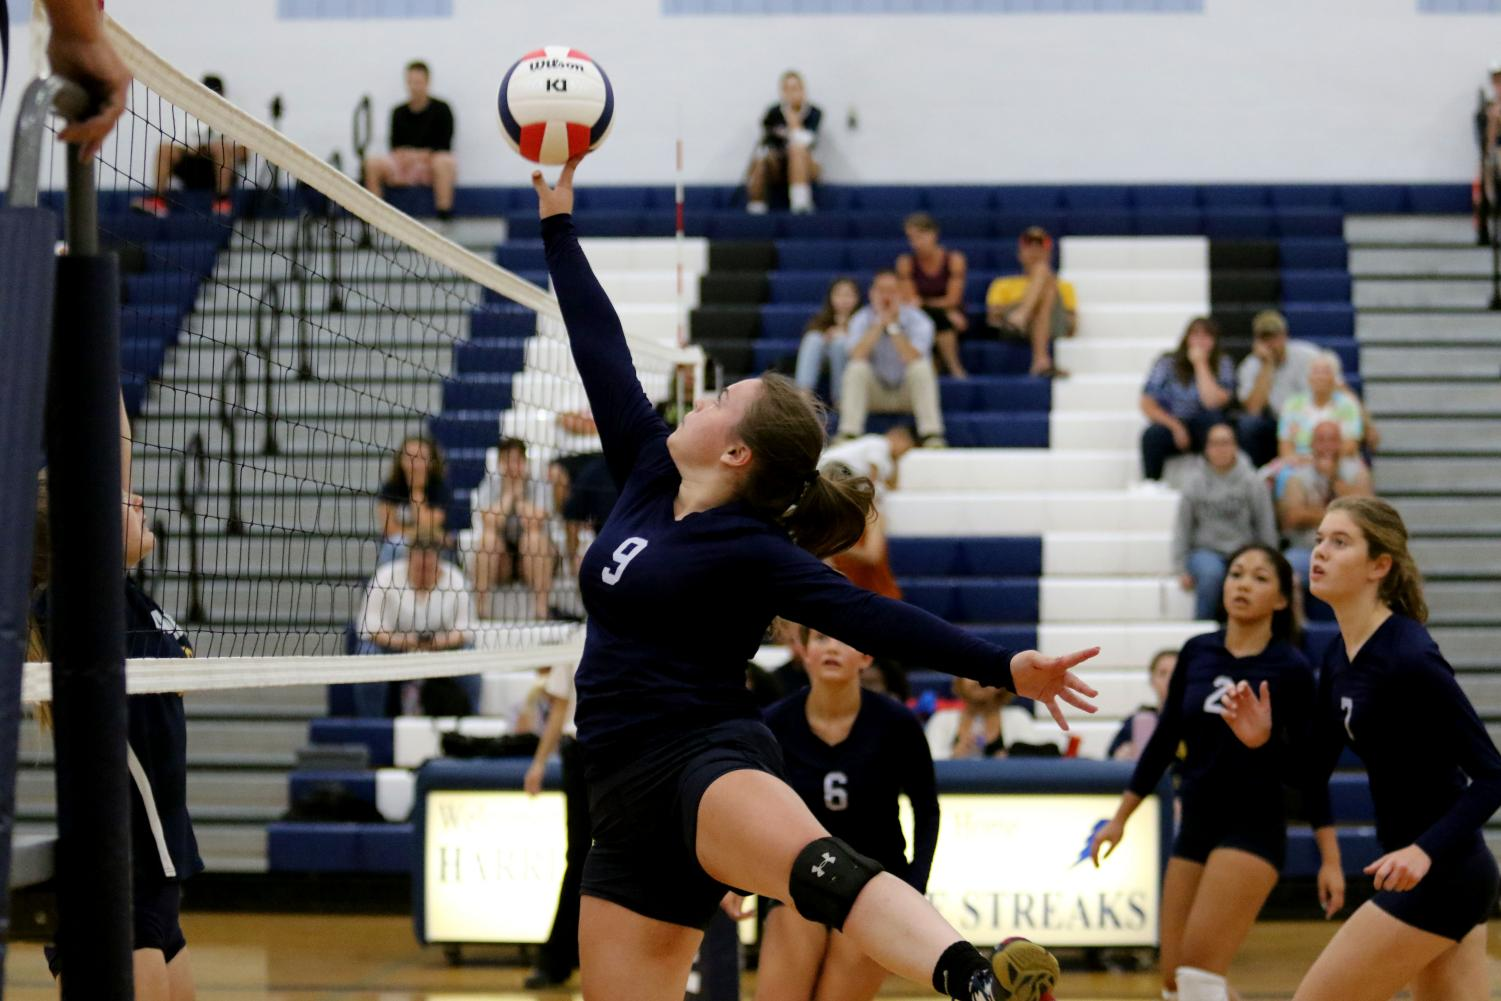 Sophomore+Hope+Persinger+jumps+up+to+tip+the+ball+over+the+net.+